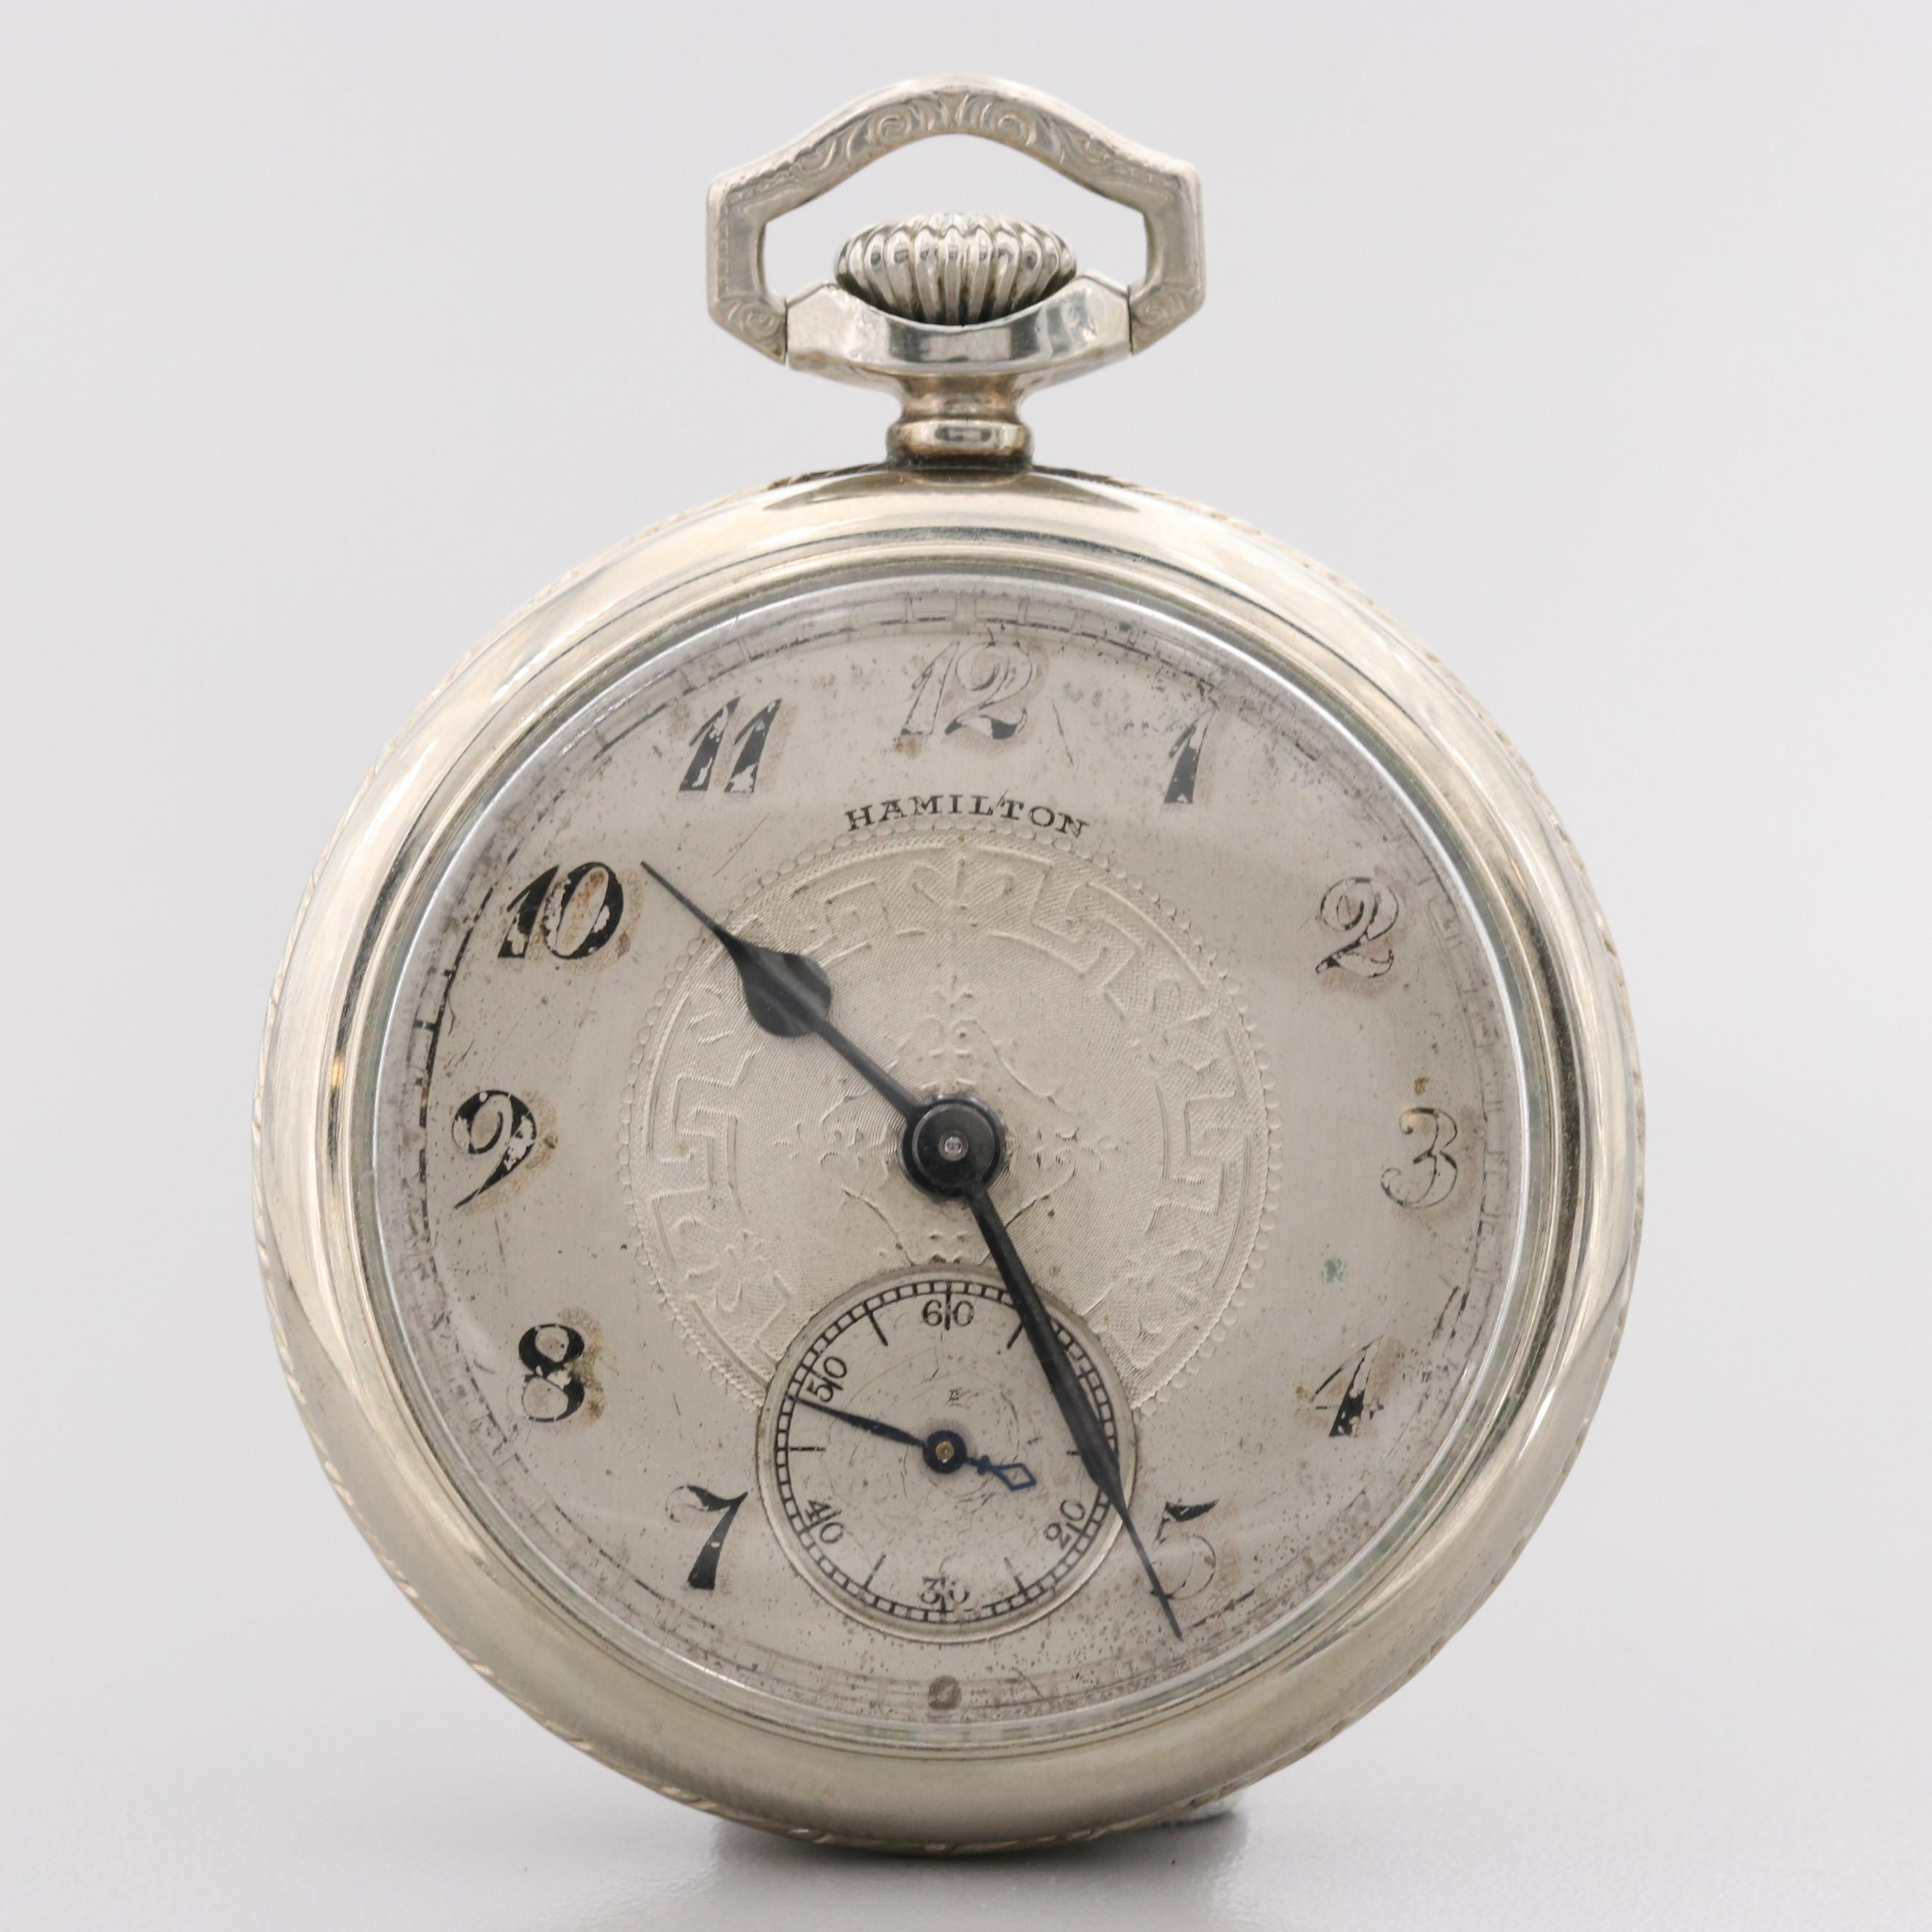 Hamilton 14K Gold Filled Pocket Watch, 1925